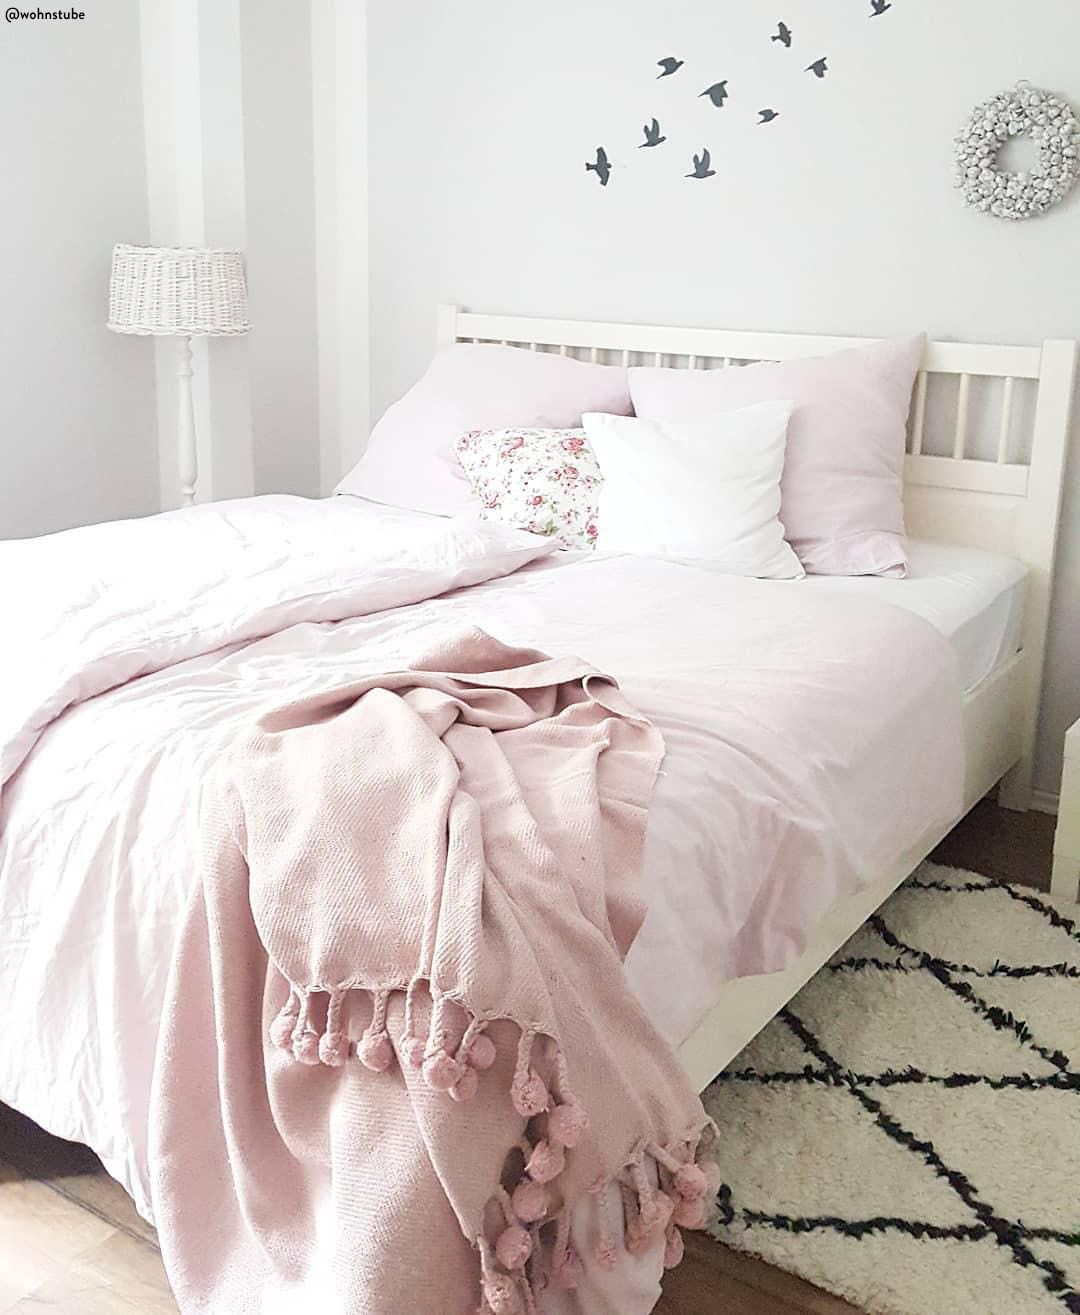 Pink Reloaded Romance Is In The Air Een Van De Grootste Trends Is Het Kleurenpalet Blush Denk Aan De Kleur Van Bett Kissen Perkal Bettwasche Teppich Rosa